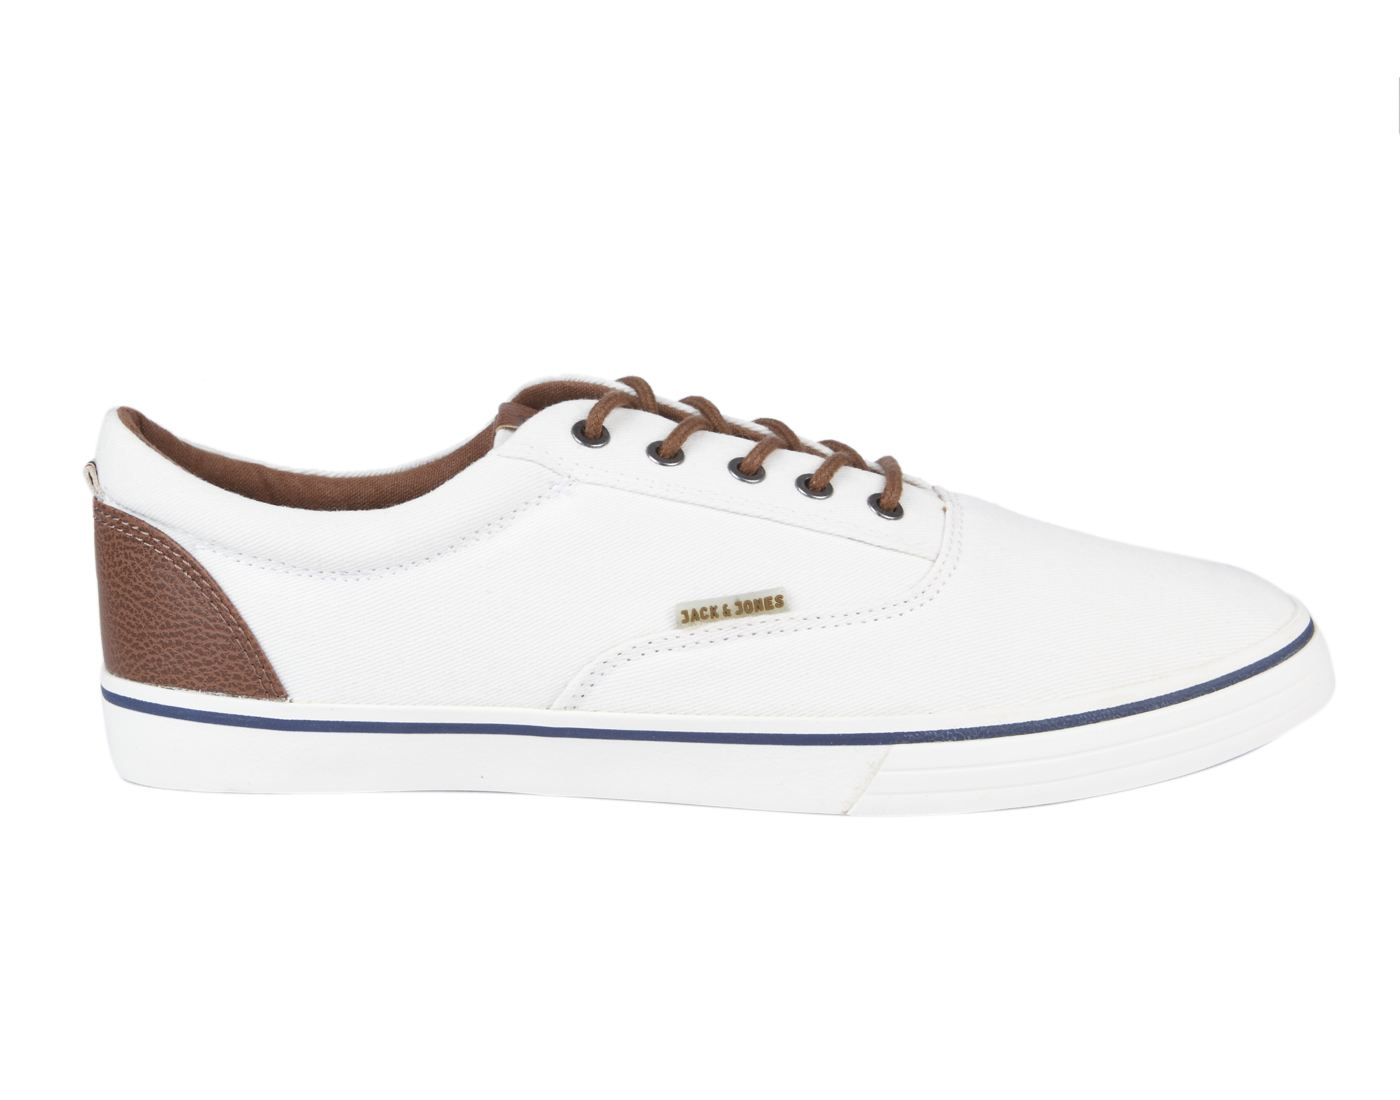 Jack & Jones Bright White Leather  (Rubber Sole) Lace-up Sneakers